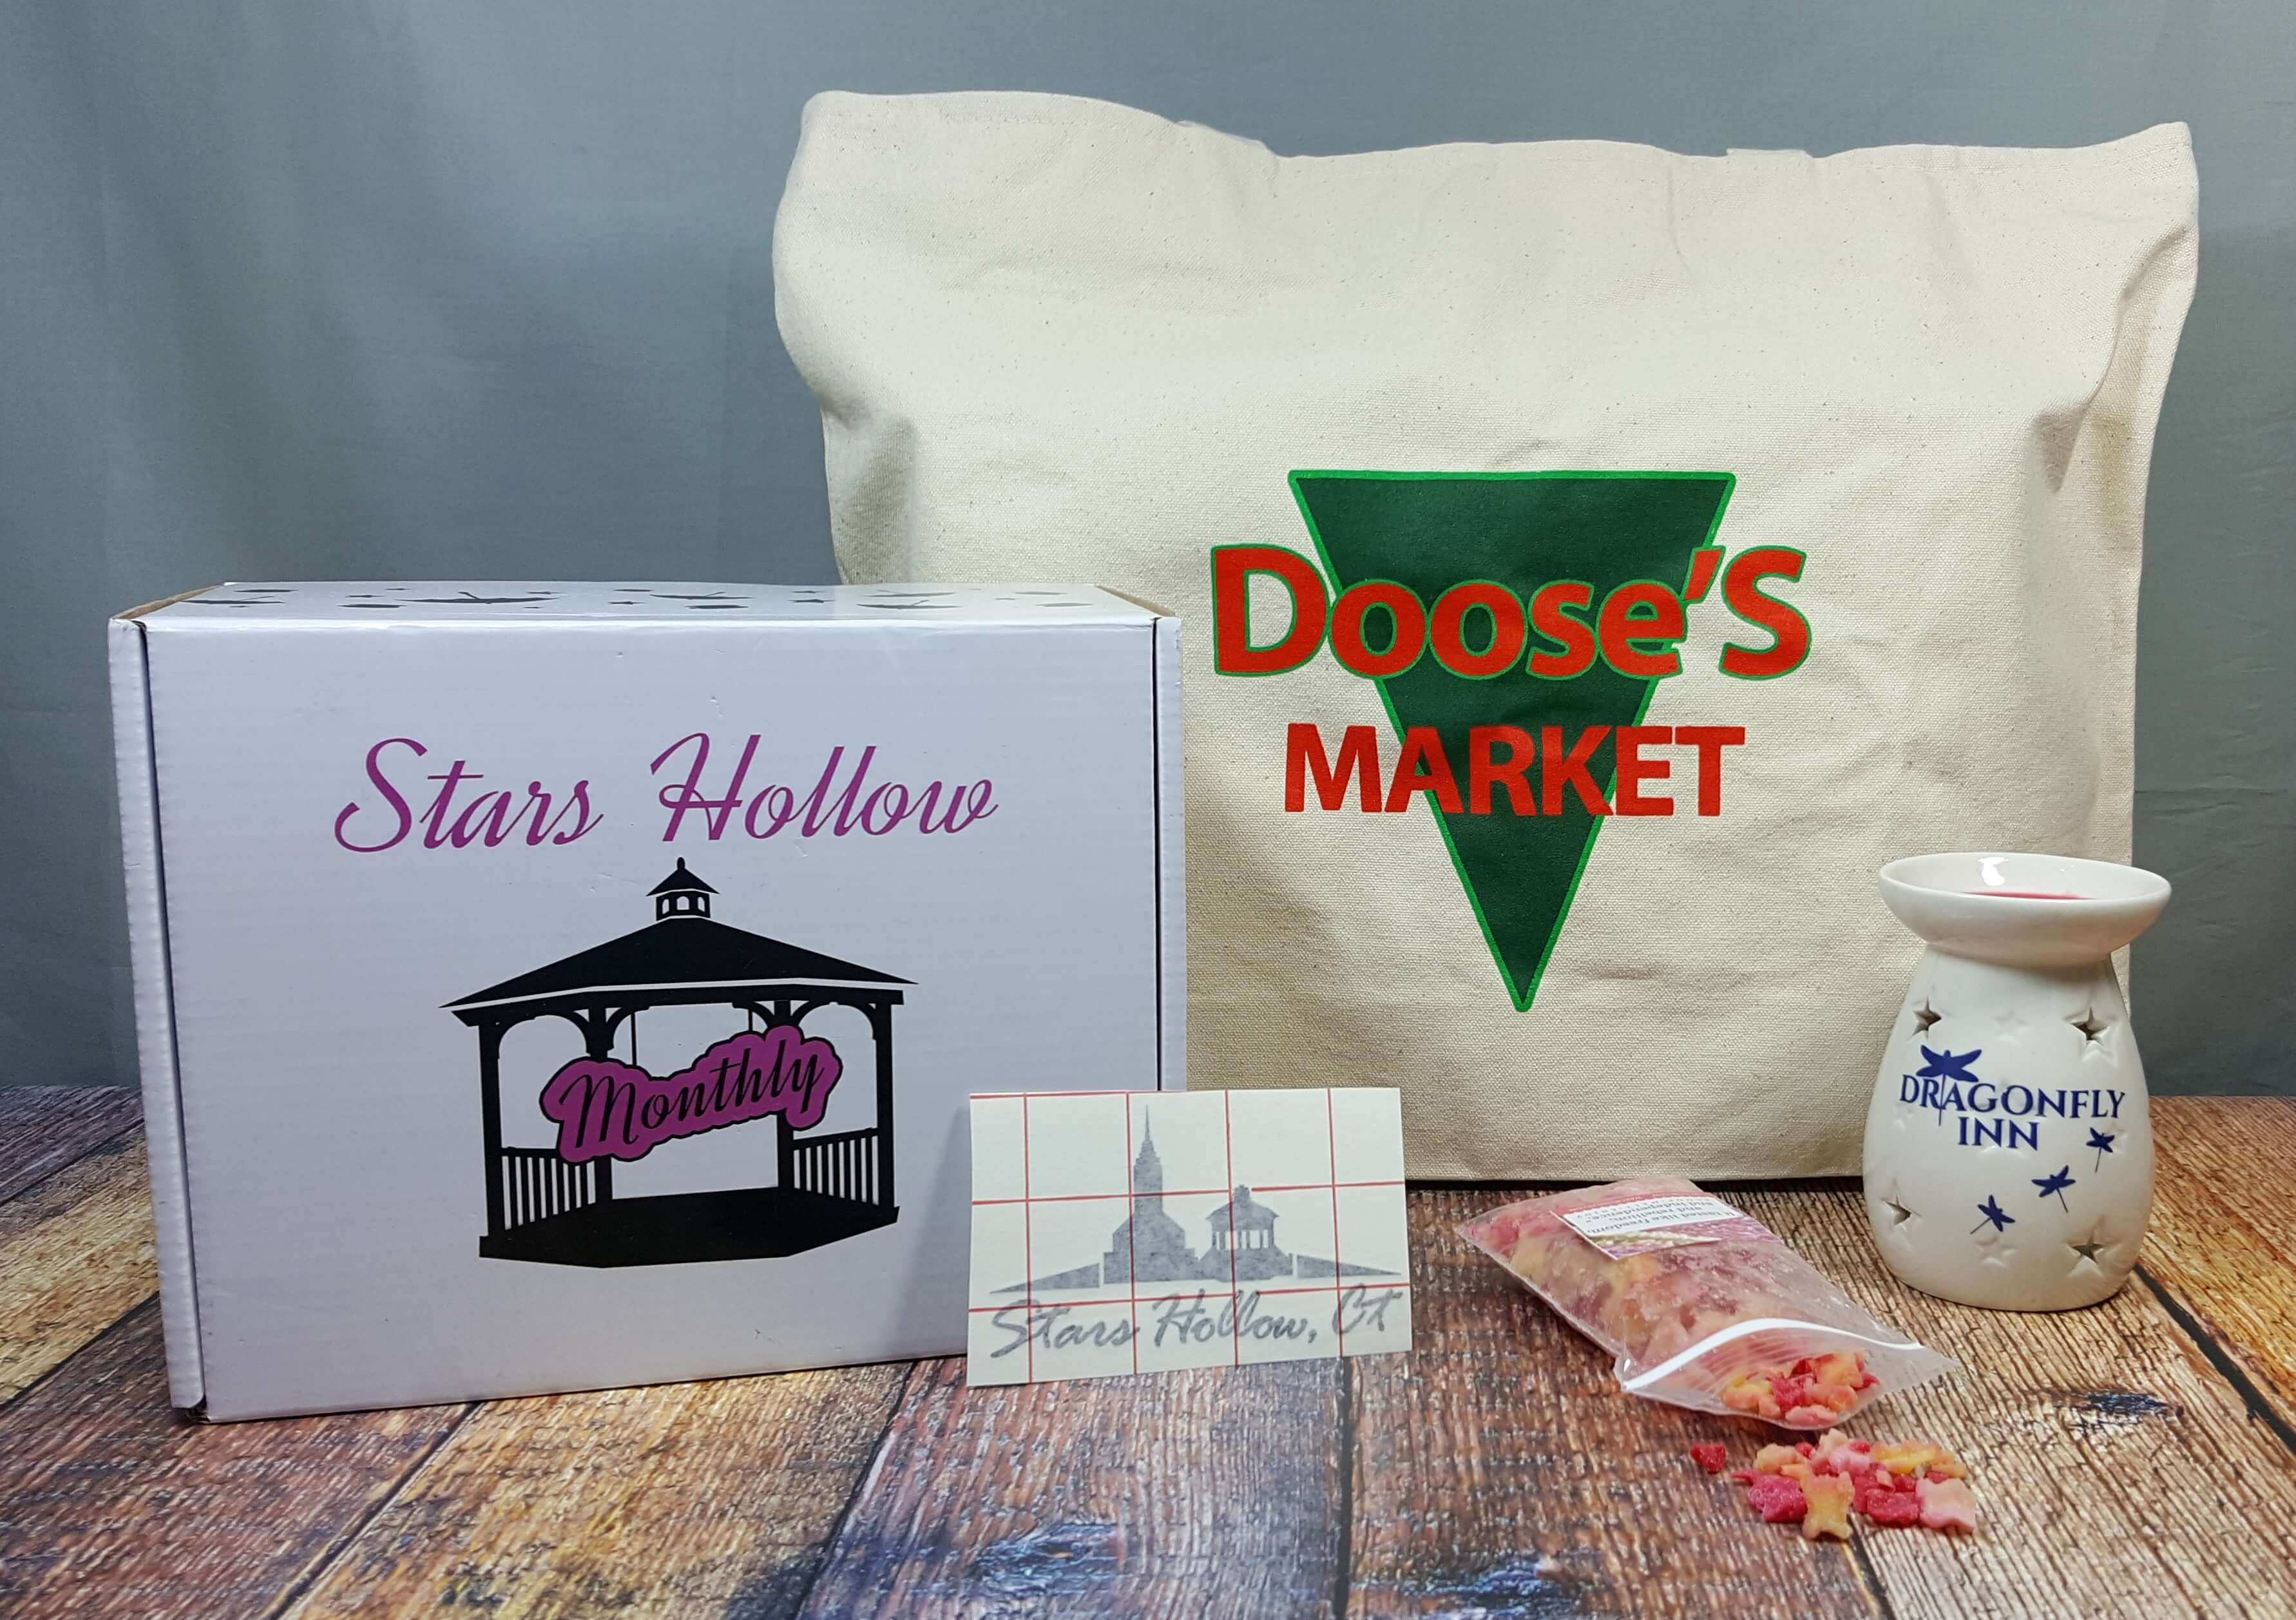 Stars Hollow Monthly September 2016 Subscription Box Review